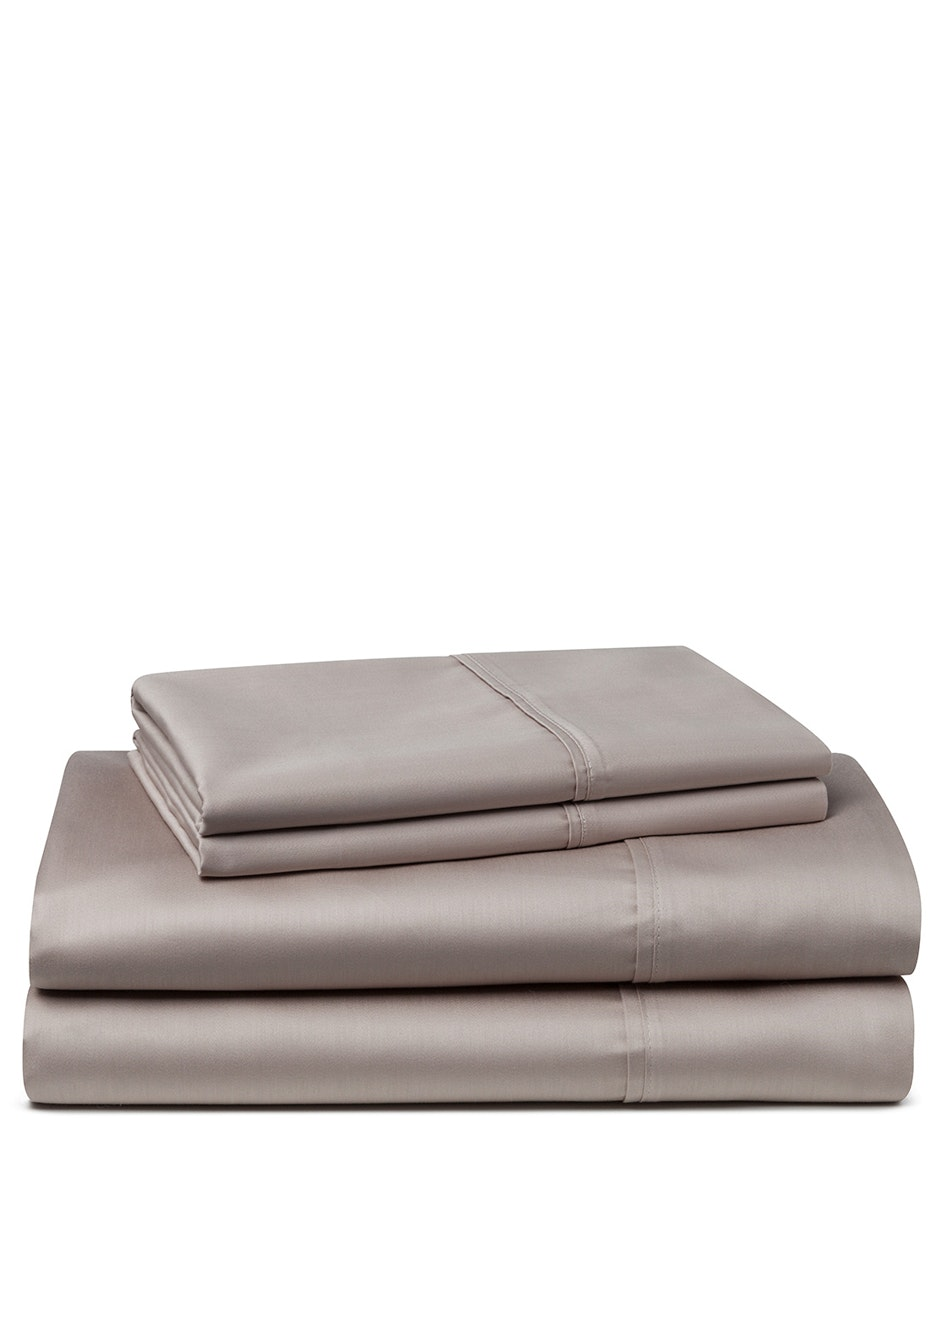 Palazzo Royale 1000 Thread Count Premium Blend Sheet Set Queen Bed Nude Taupe